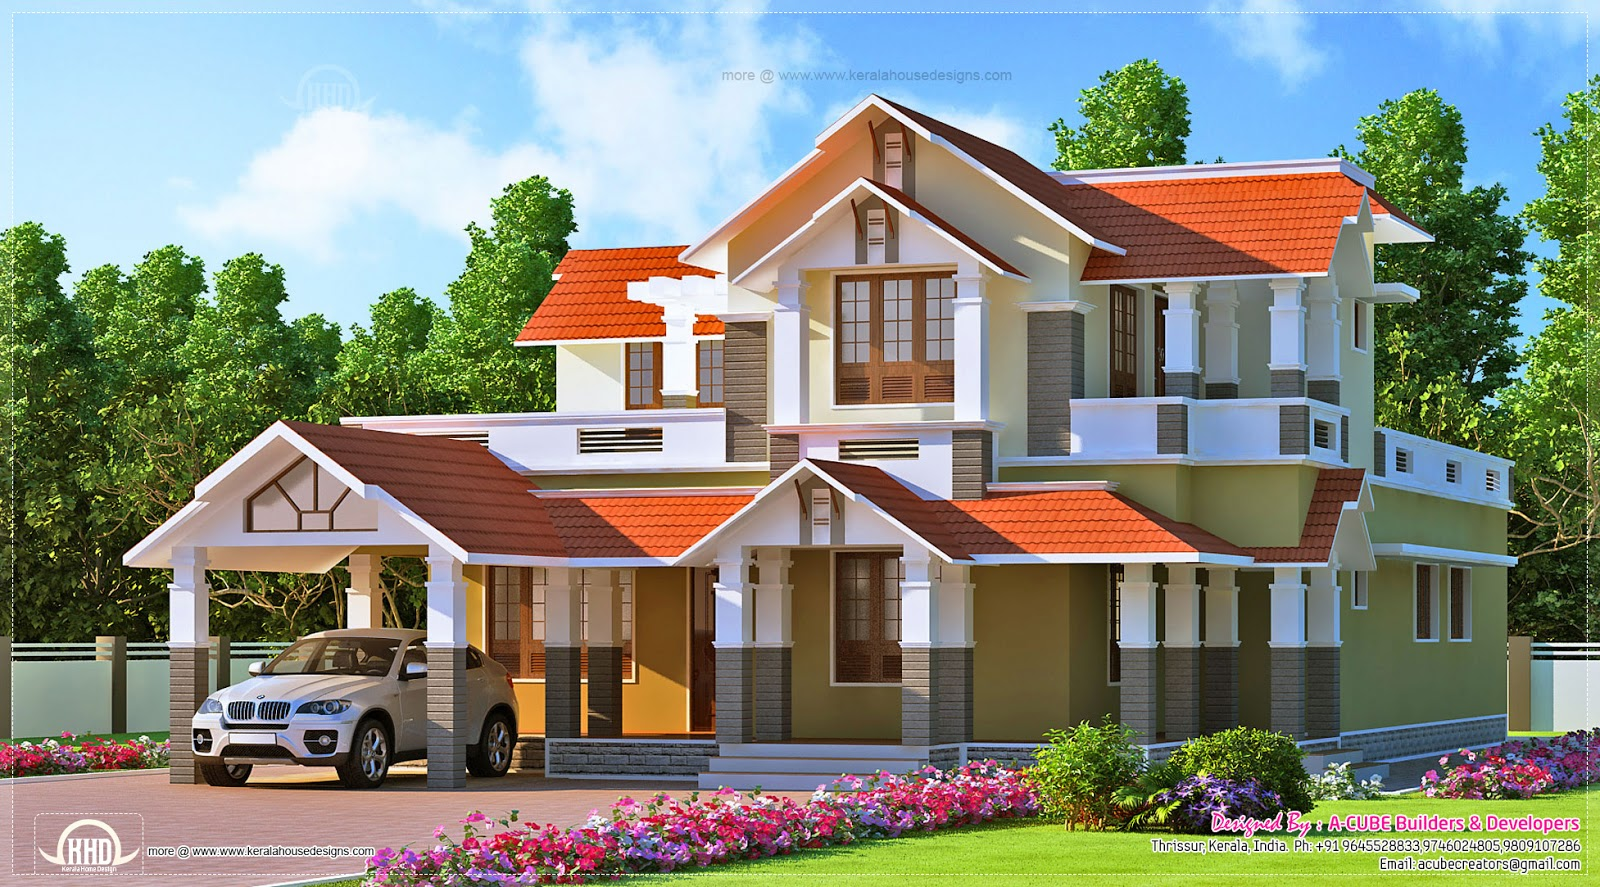 Kerala style dream home design in 2900 house for Best house design usa